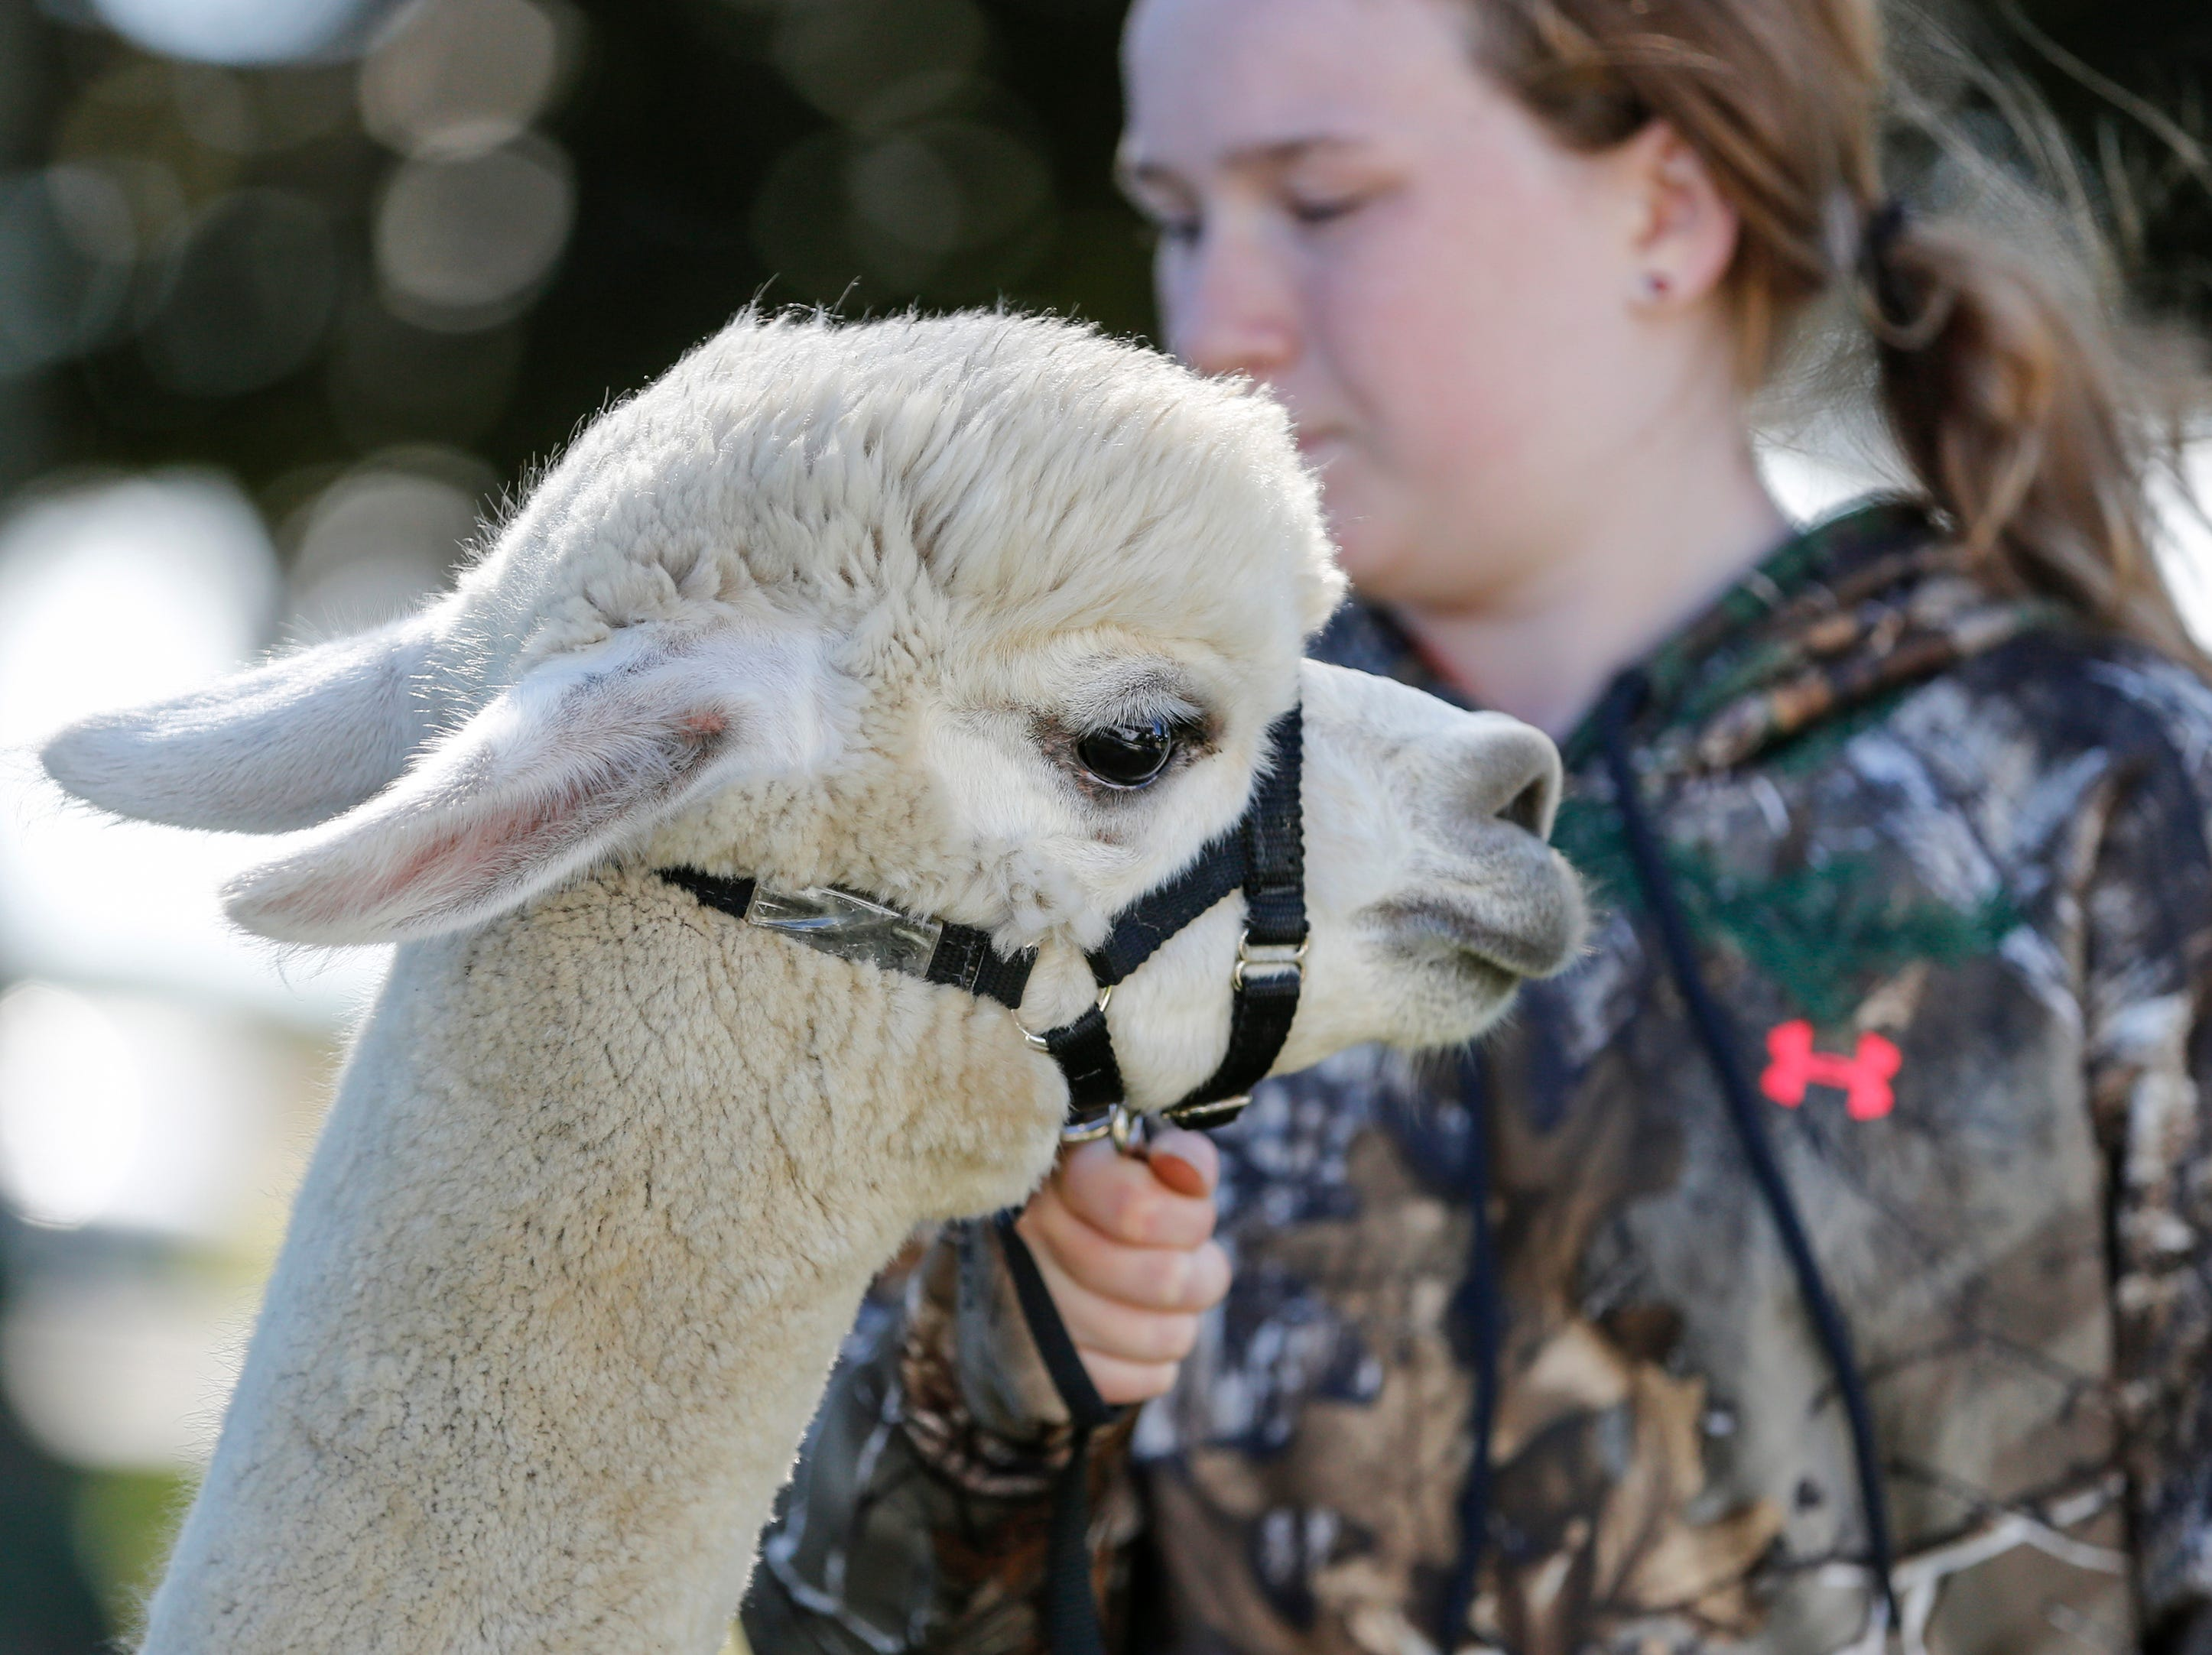 Ellie Hanson, 11, of the Manitowoc County 4-H Alpaca Project holds her alpaca during National Alpaca Days at LondonDairy Alpaca Ranch Saturday, September 22, 2018, in Two Rivers, Wis. Josh Clark/USA TODAY NETWORK-Wisconsin